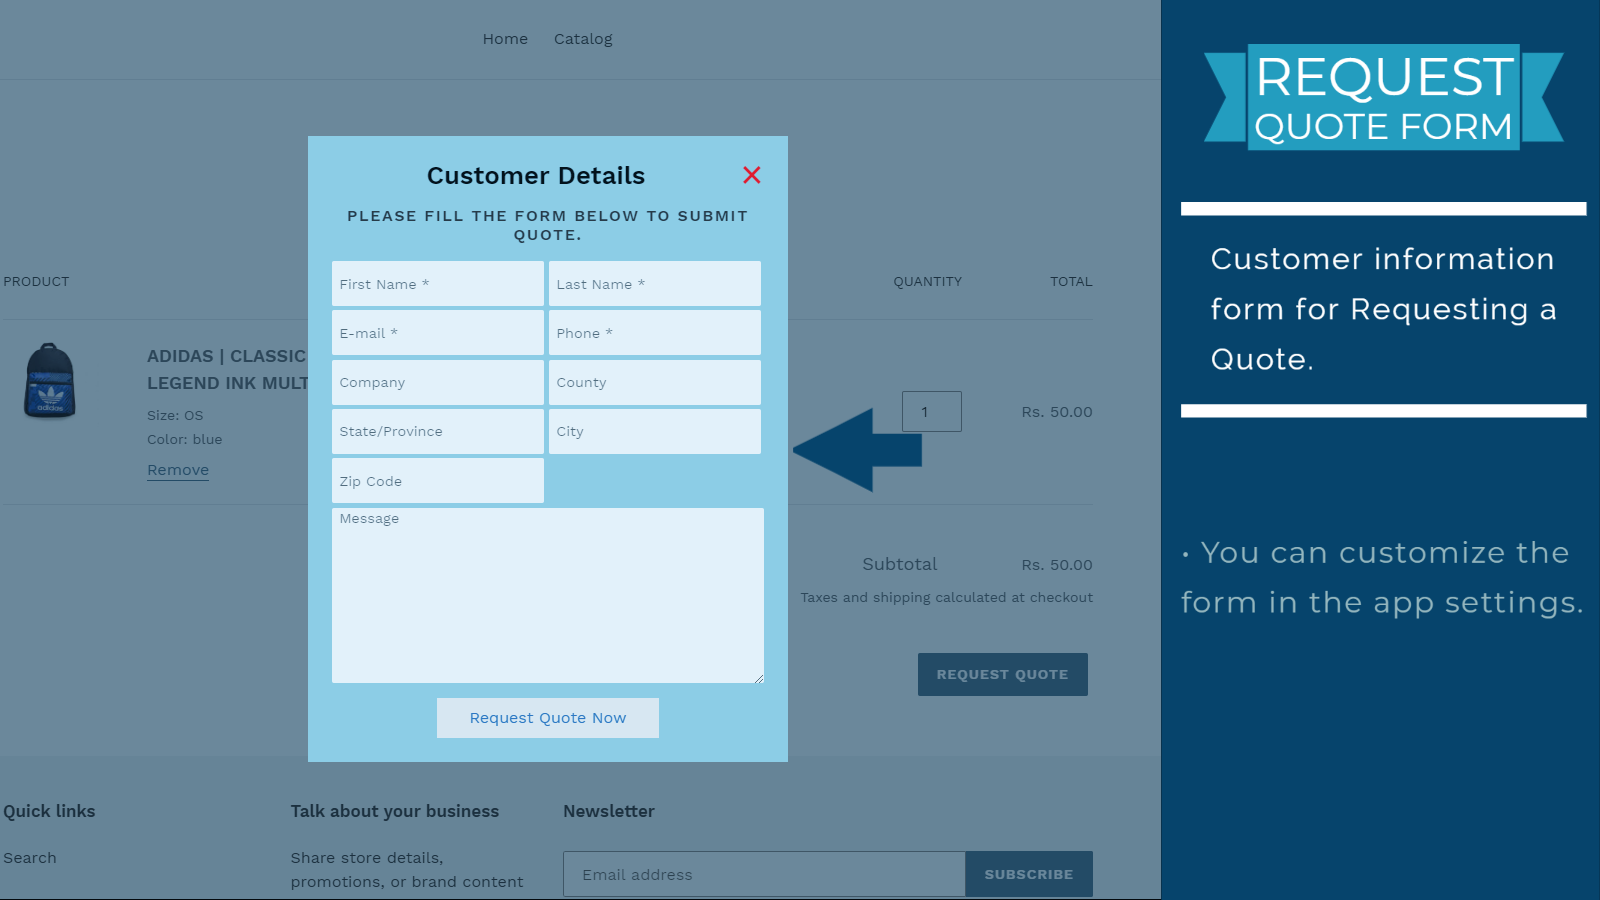 Request Quote form for customer.